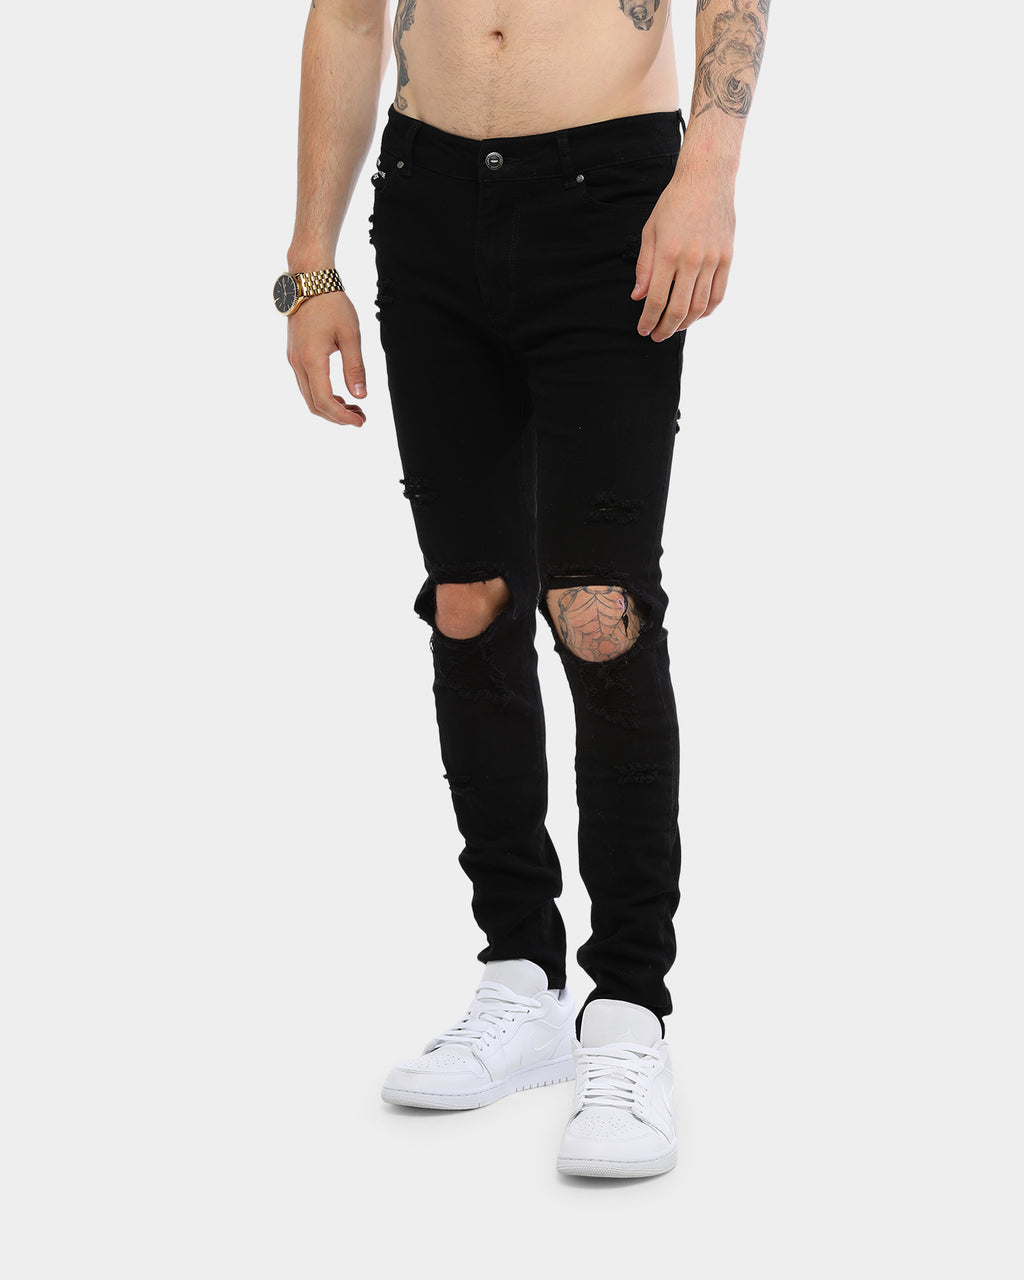 Carré Endommage Jean Tall Black